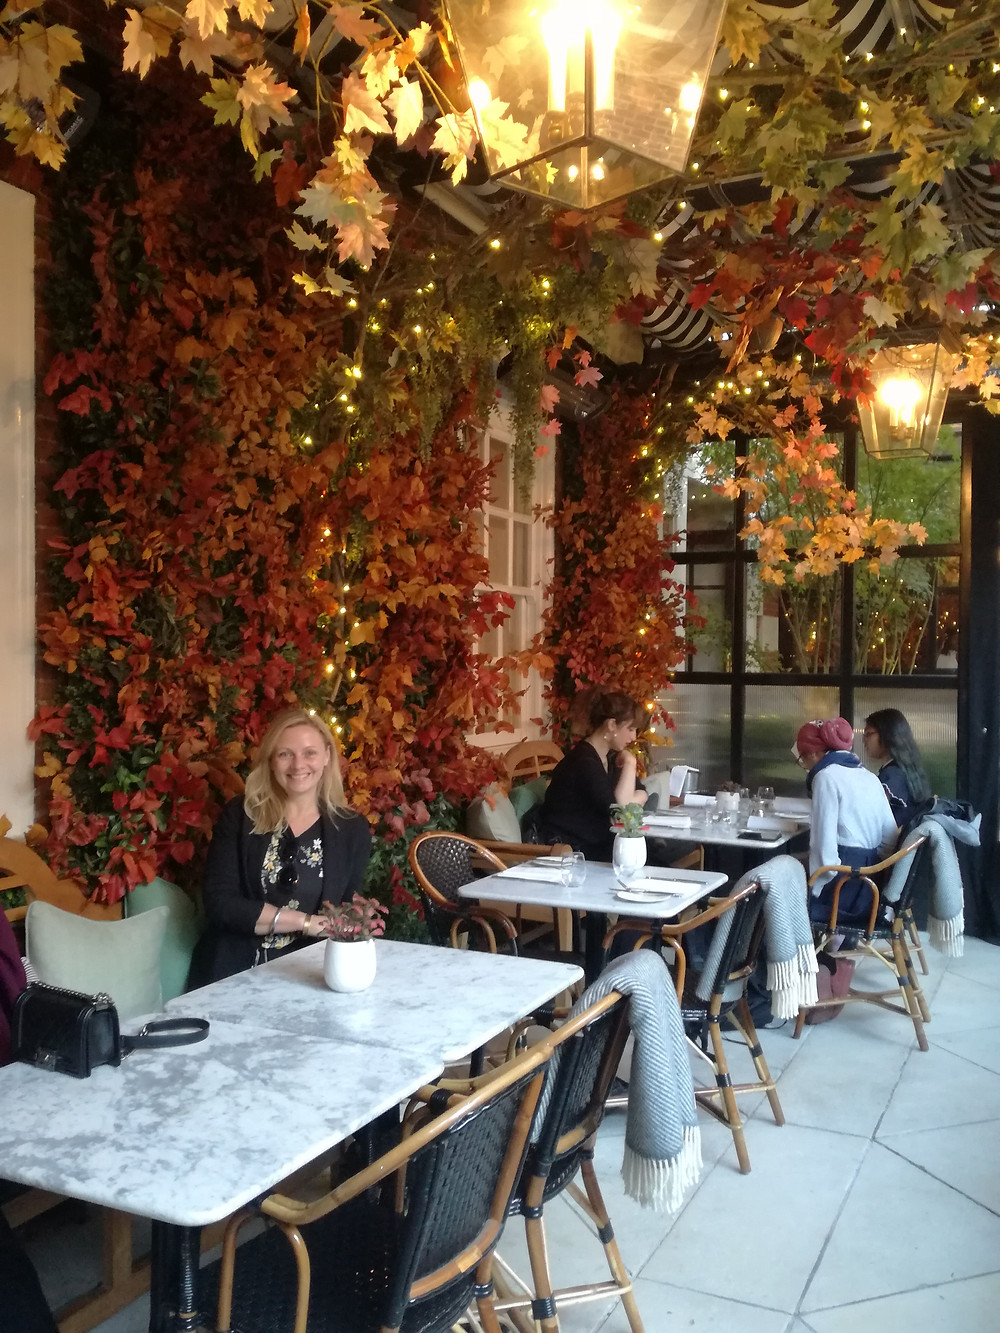 Literatura e gastronomia no Dalloway Terrace